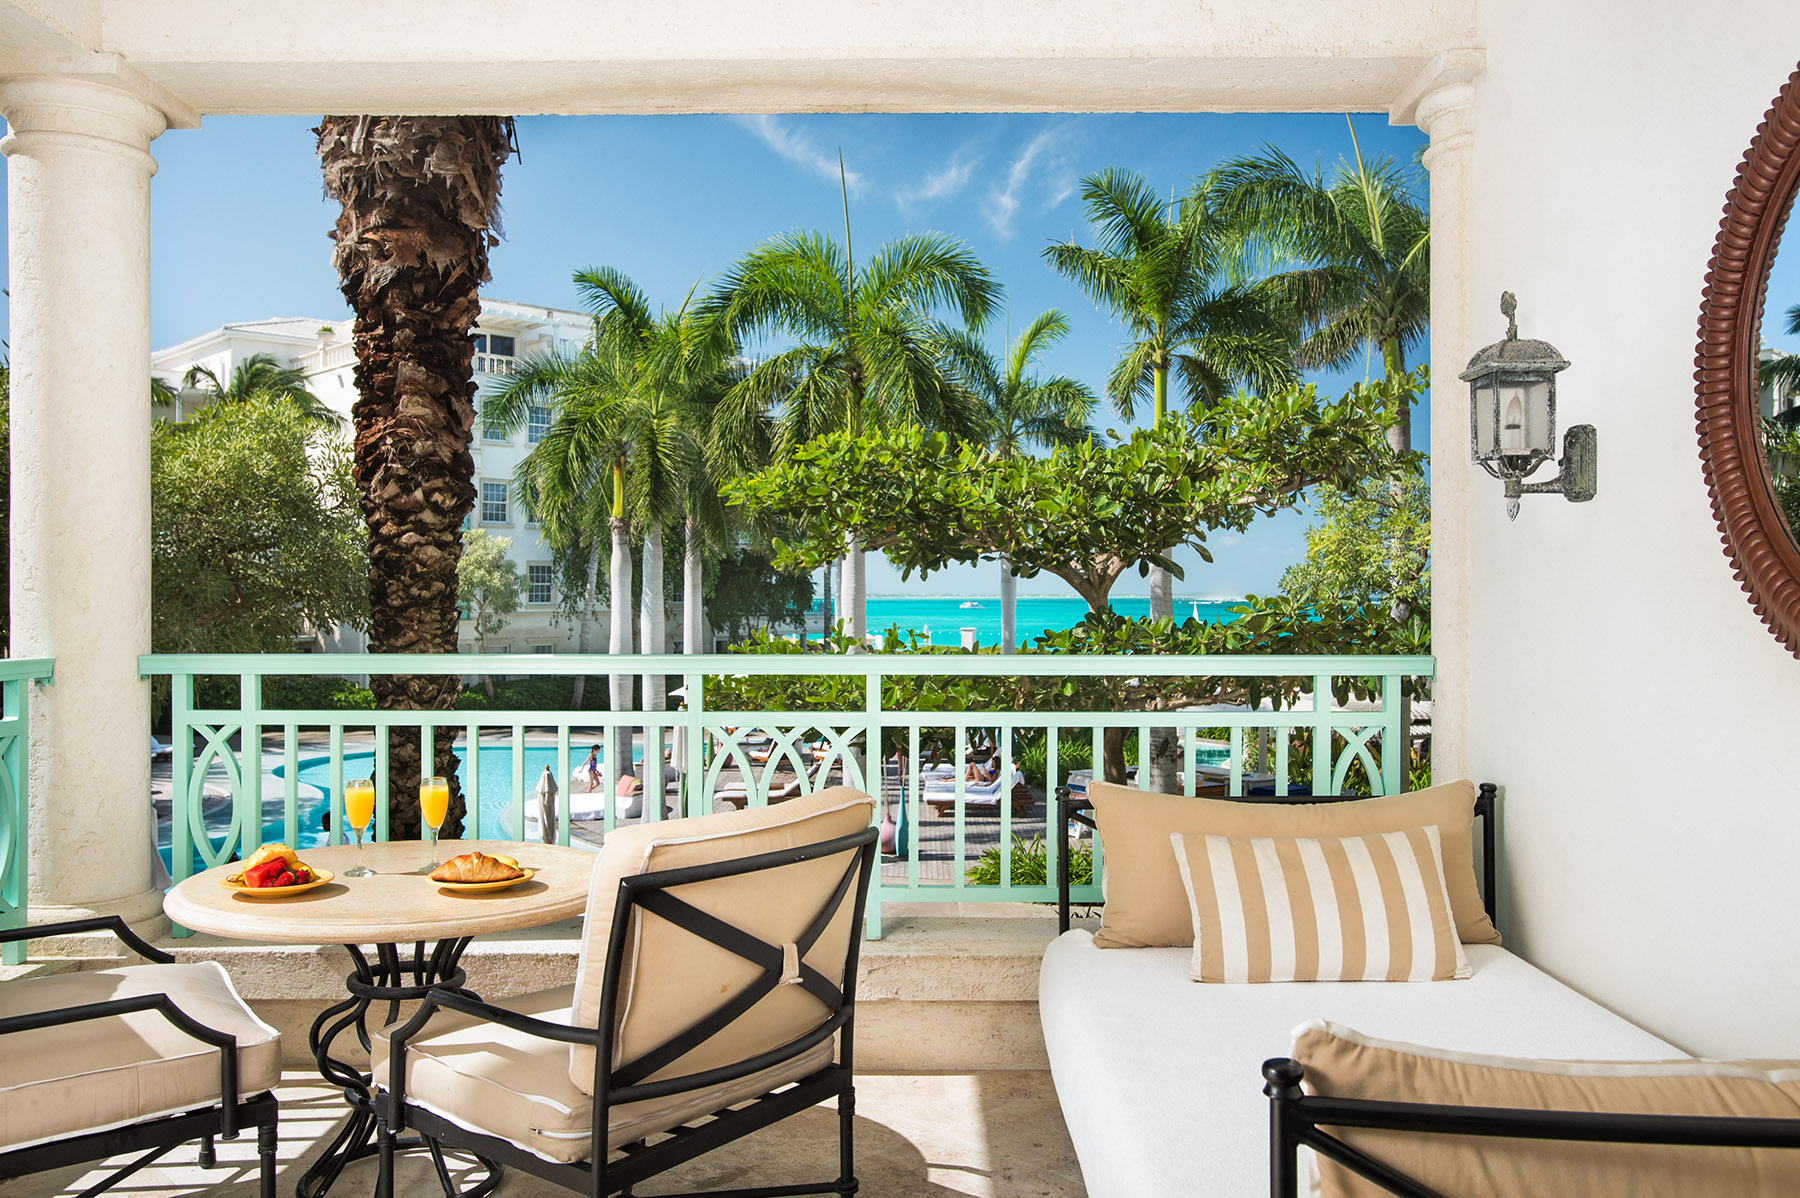 Property For Sale at The Palms   Turks and Caicos -Suite 2204.2205